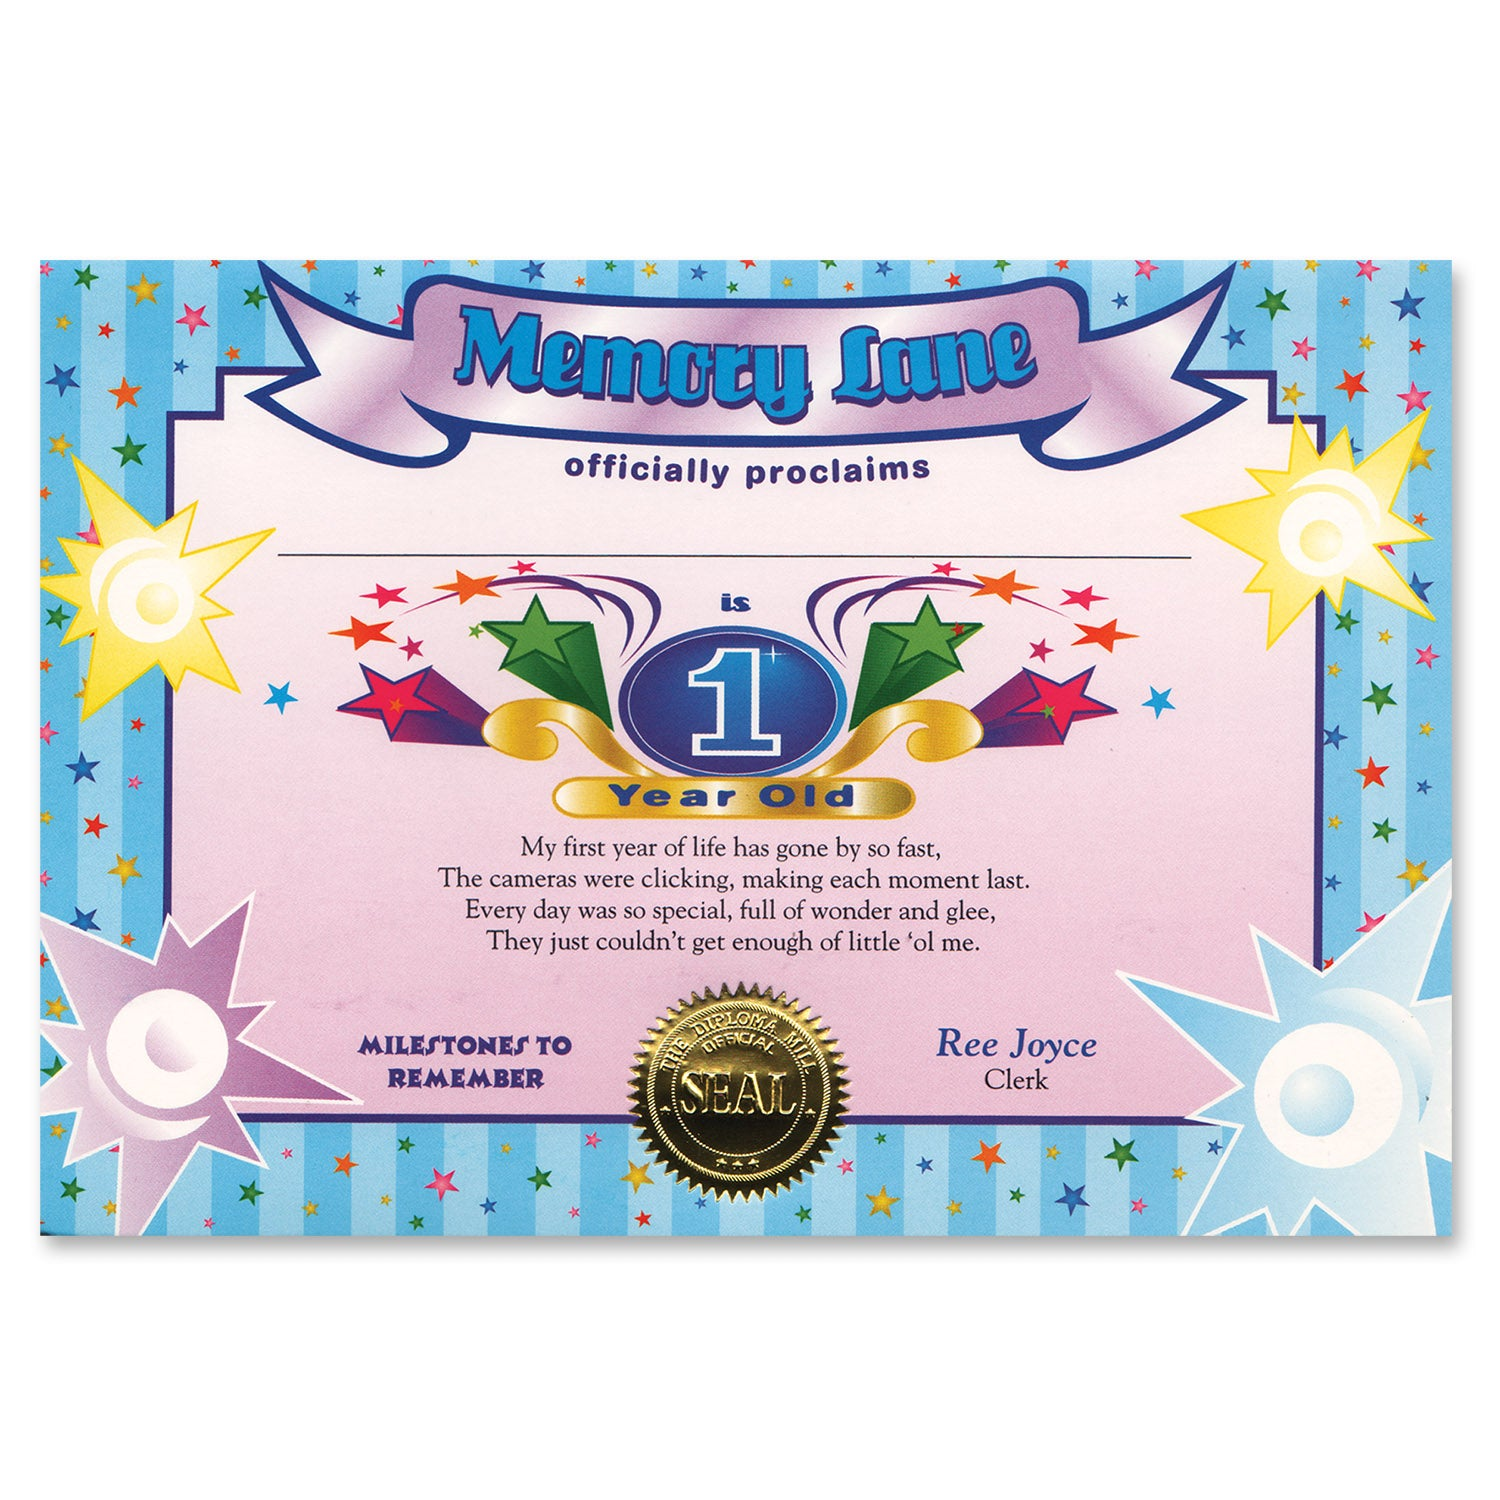 1 Year Old (Boy) Certificate by Beistle - 1st Birthday Party Decorations